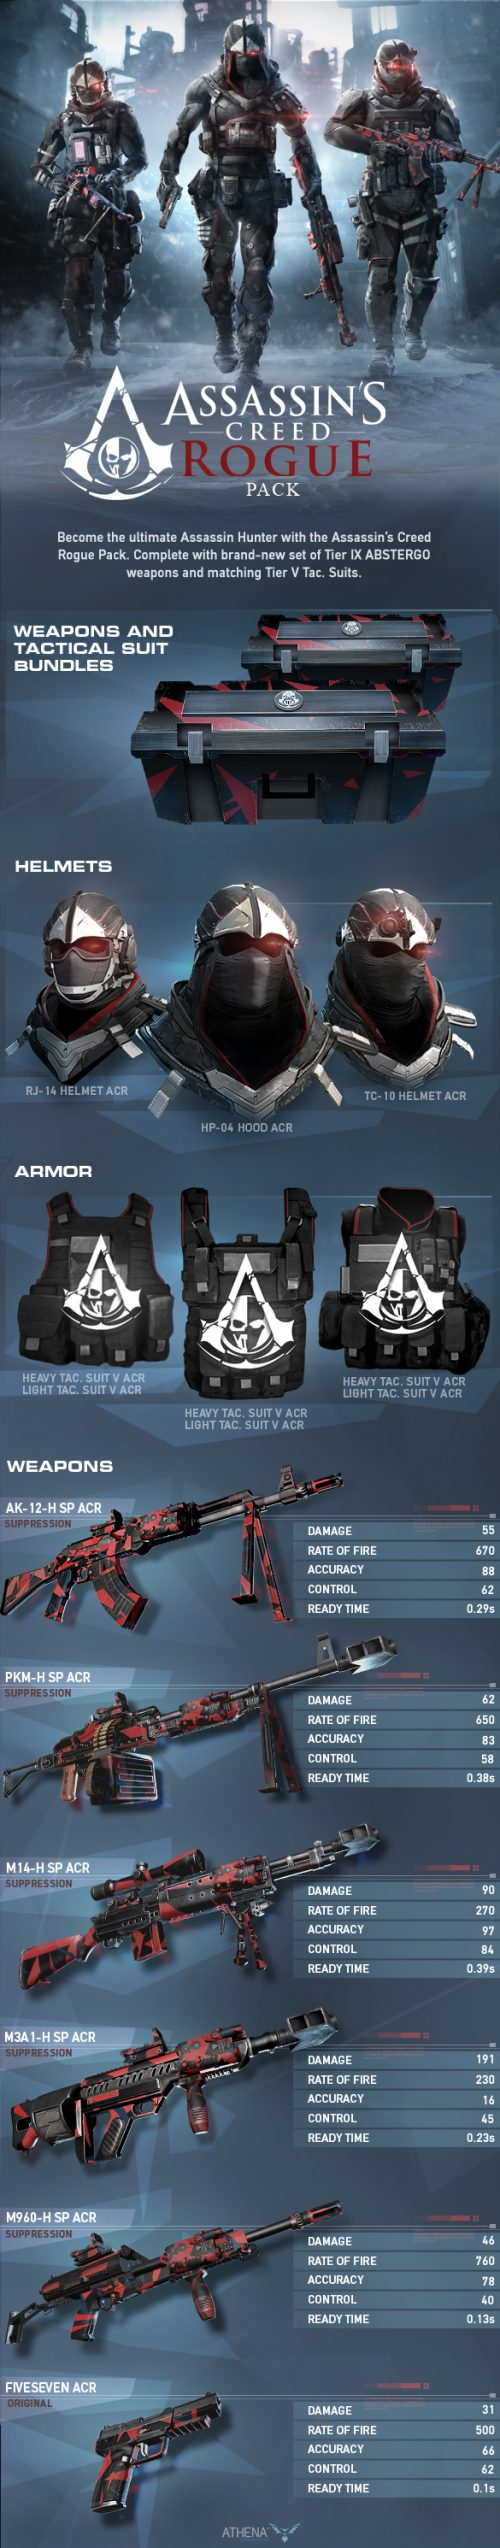 Assassin's Creed Rogue Content Sneaking onto Tom Clancy's Ghost Recon Phantoms